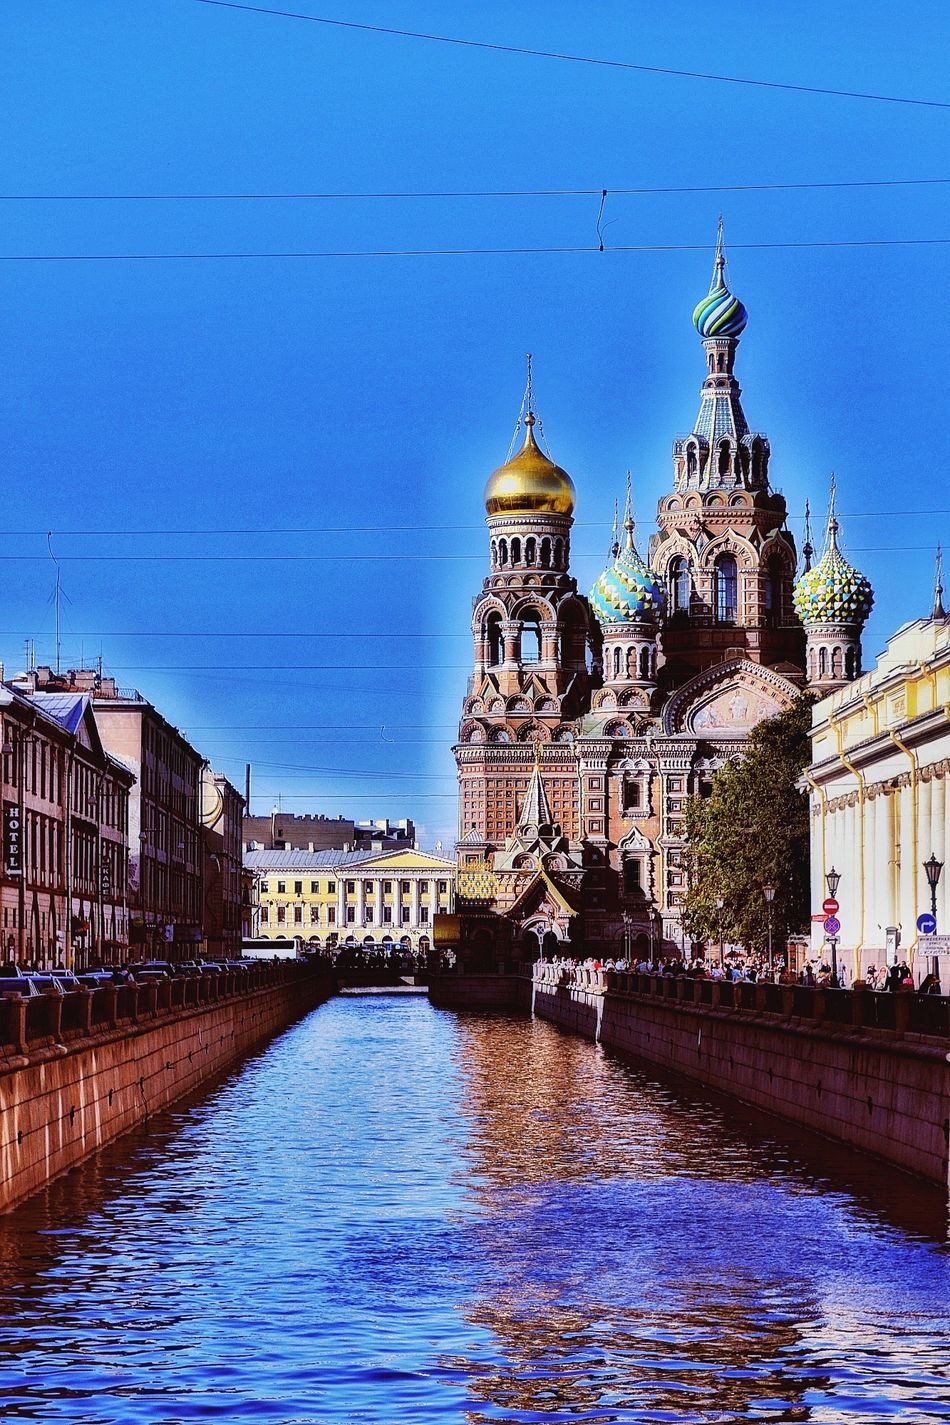 Photography Photo Photooftheday Day Daylight Blue Blue Sky Sky Water Water_collection Nevsky Prospect Neva Saint Petersburg Church Temple Dome Street Streetphotography Street Photography Streetphoto_color Russia Sight Summer Summertime